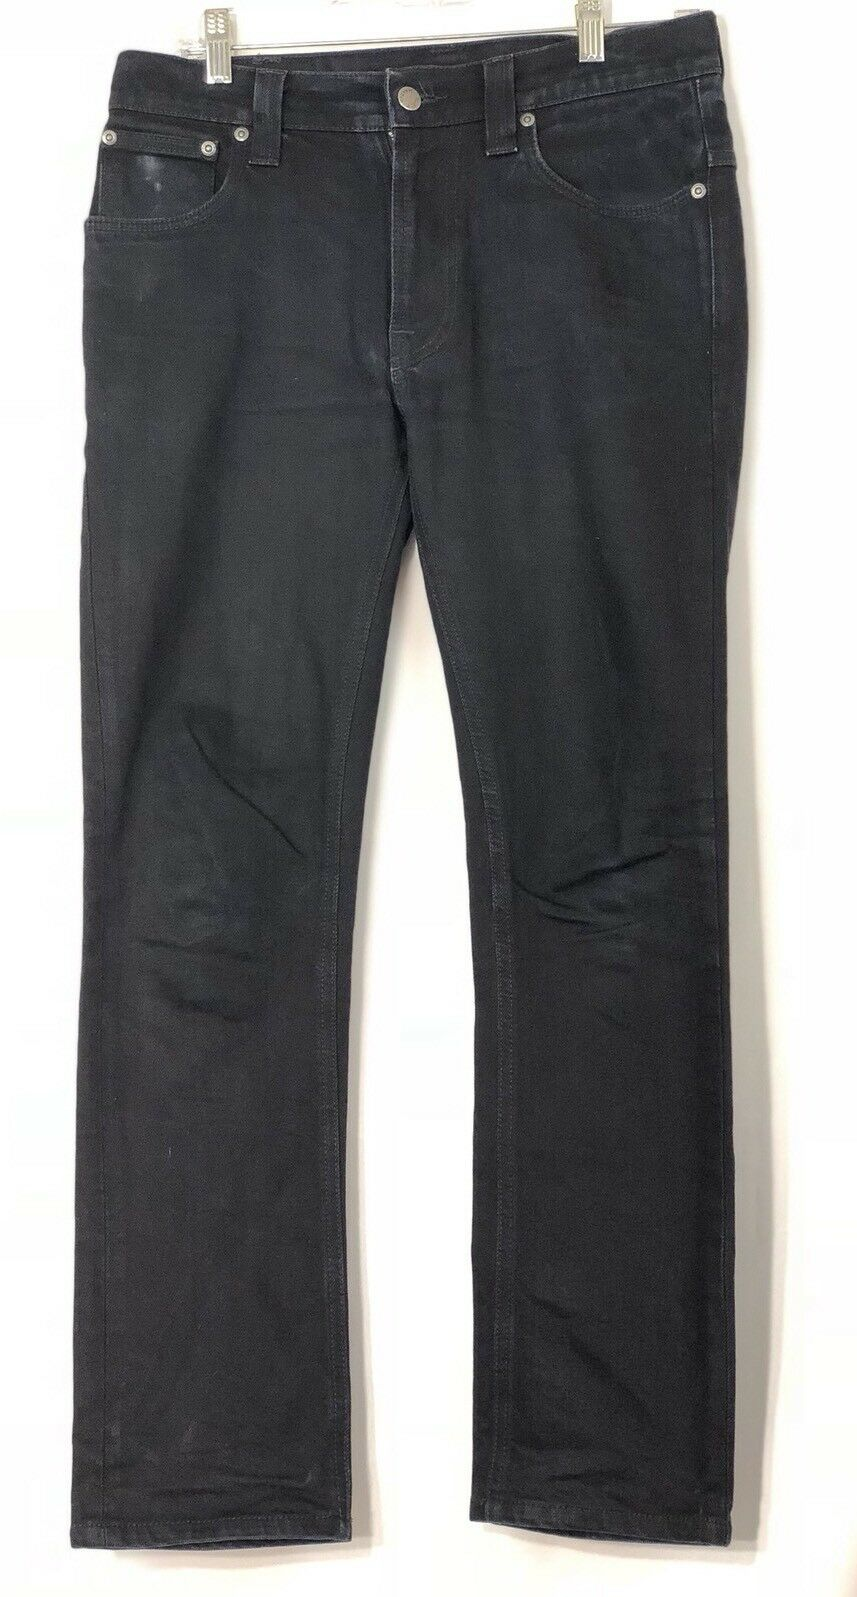 Nudie Dark bluee Unisex Jeans Sz W30 L29 Very Good Condition Made In